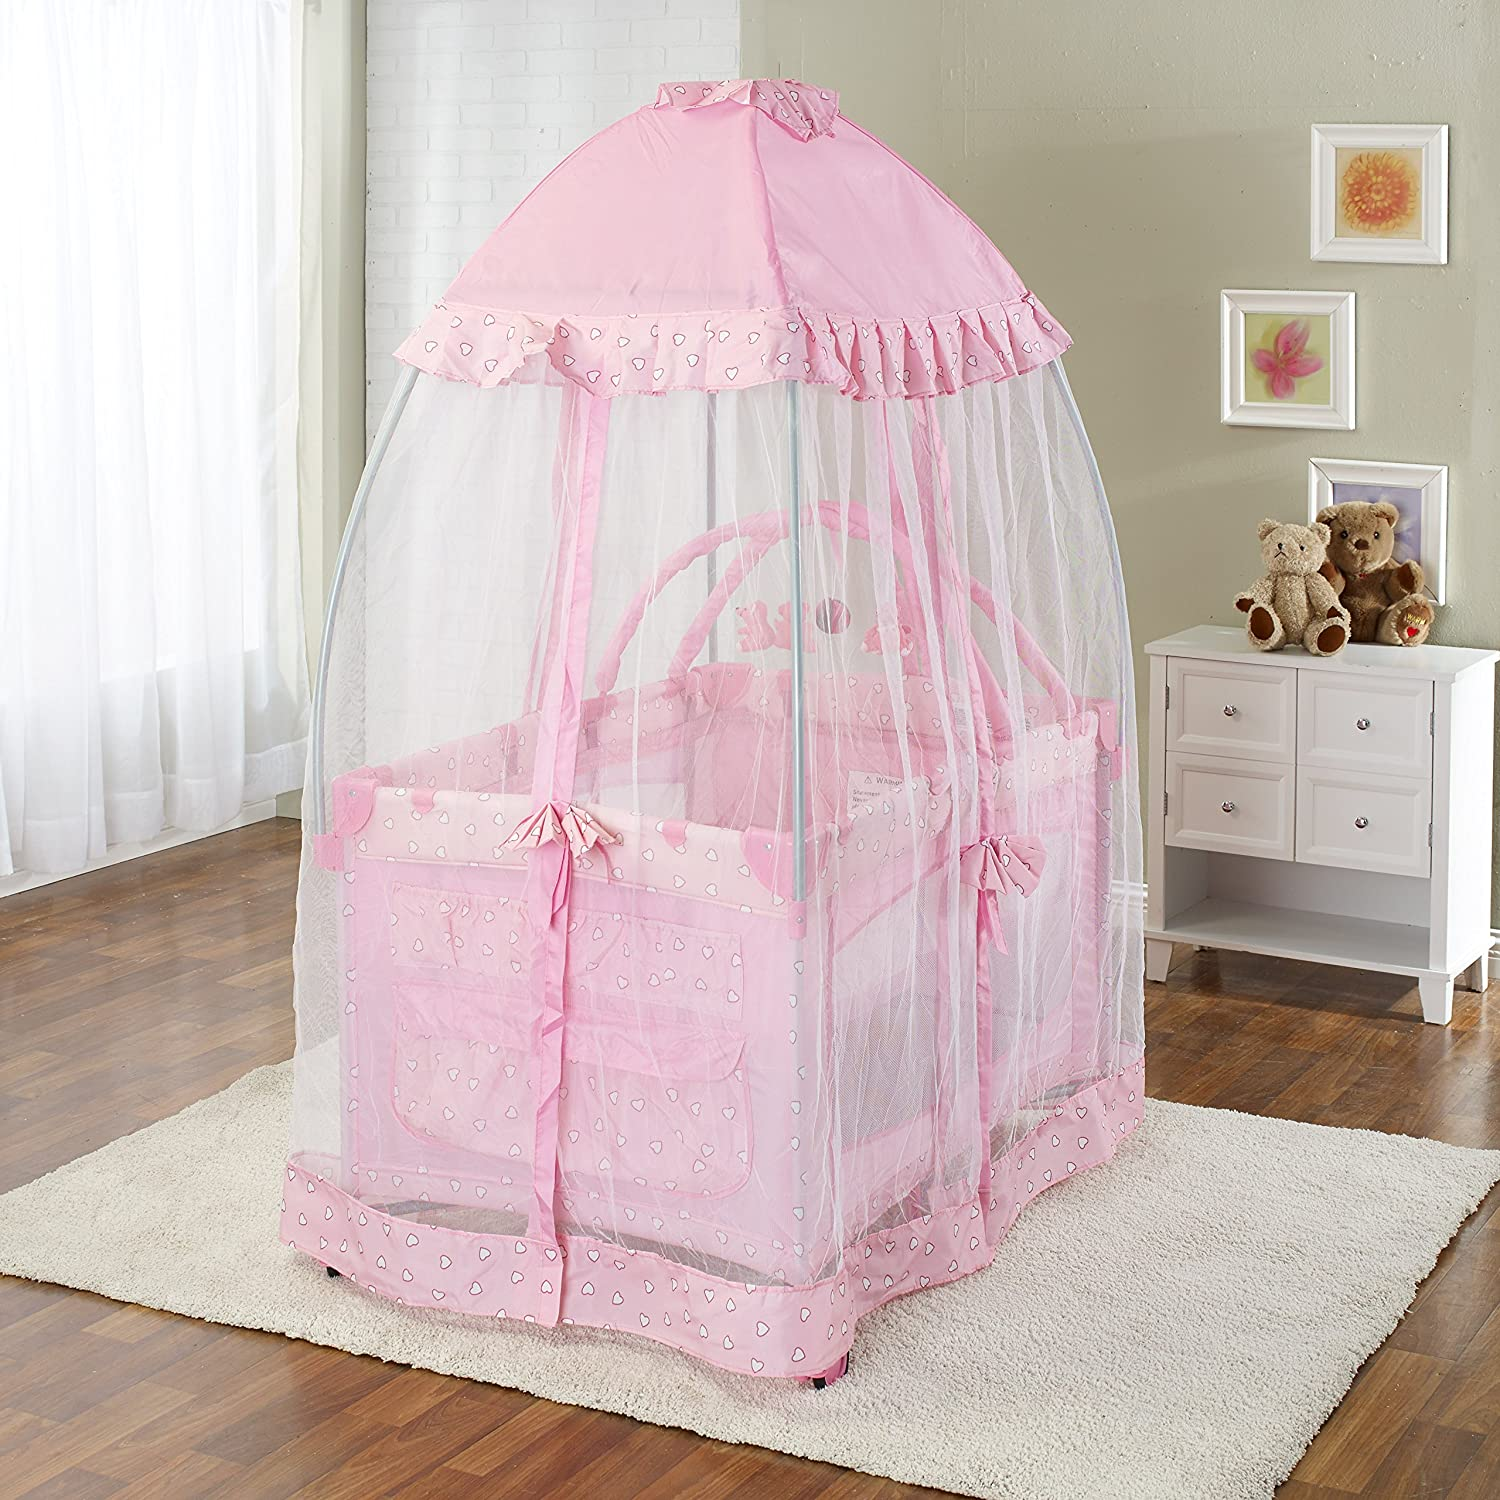 Big Oshi Portable Playard Deluxe Bundle – Nursery Center With Canopy Net Topper – Medium Size – Lightweight, Compact Design, Includes Carry Bag – Perfect for Indoor or Outdoor Backyard Use, Pink